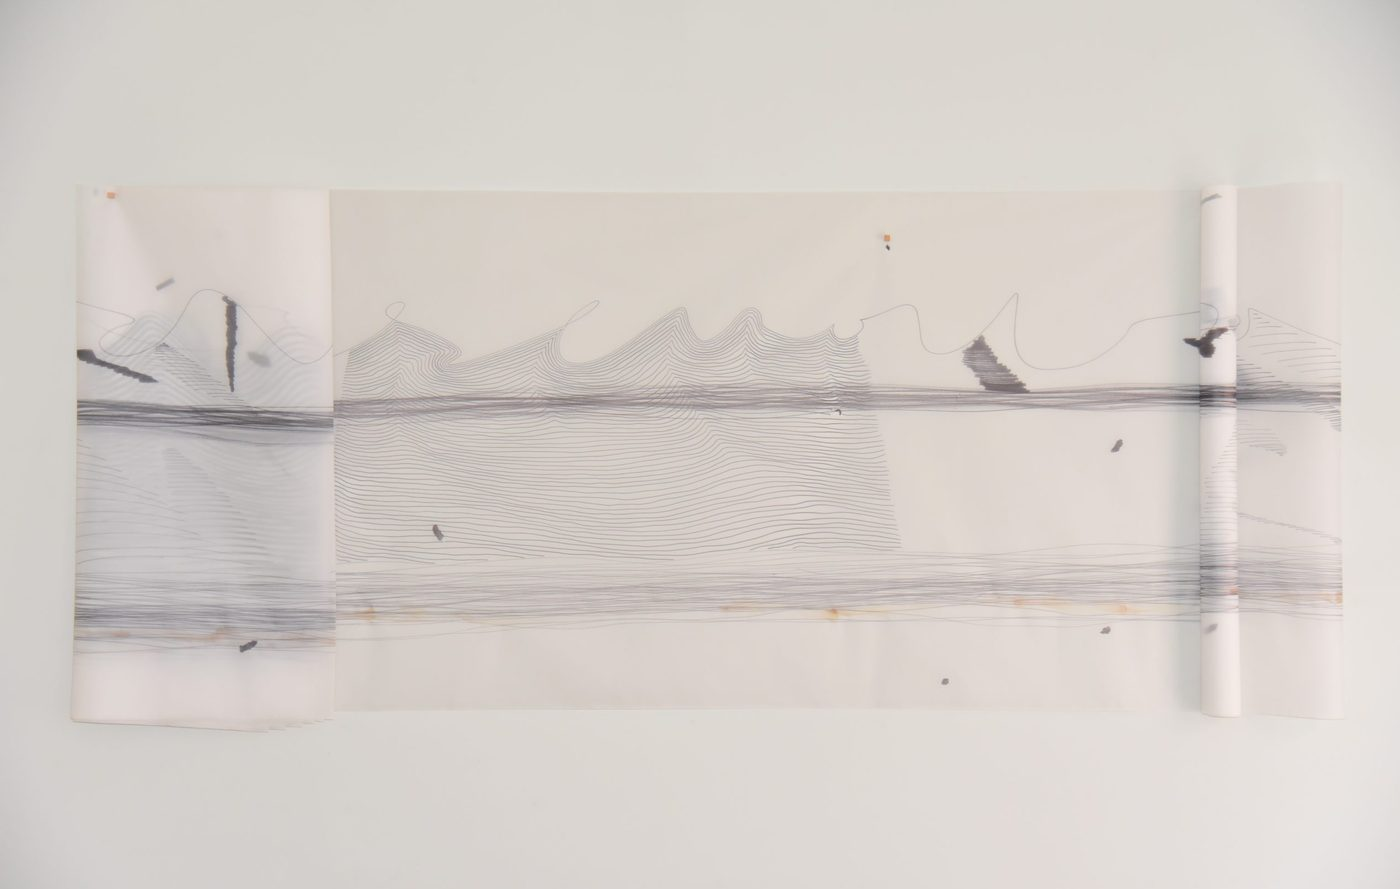 A piece of paper that is folded and tacked up onto the wall. On the paper there appears to be a landscape rendered in ink and drawn over with wavy lines. On the far right the waves are not filled in, and at the bottom there are streaks of coffee